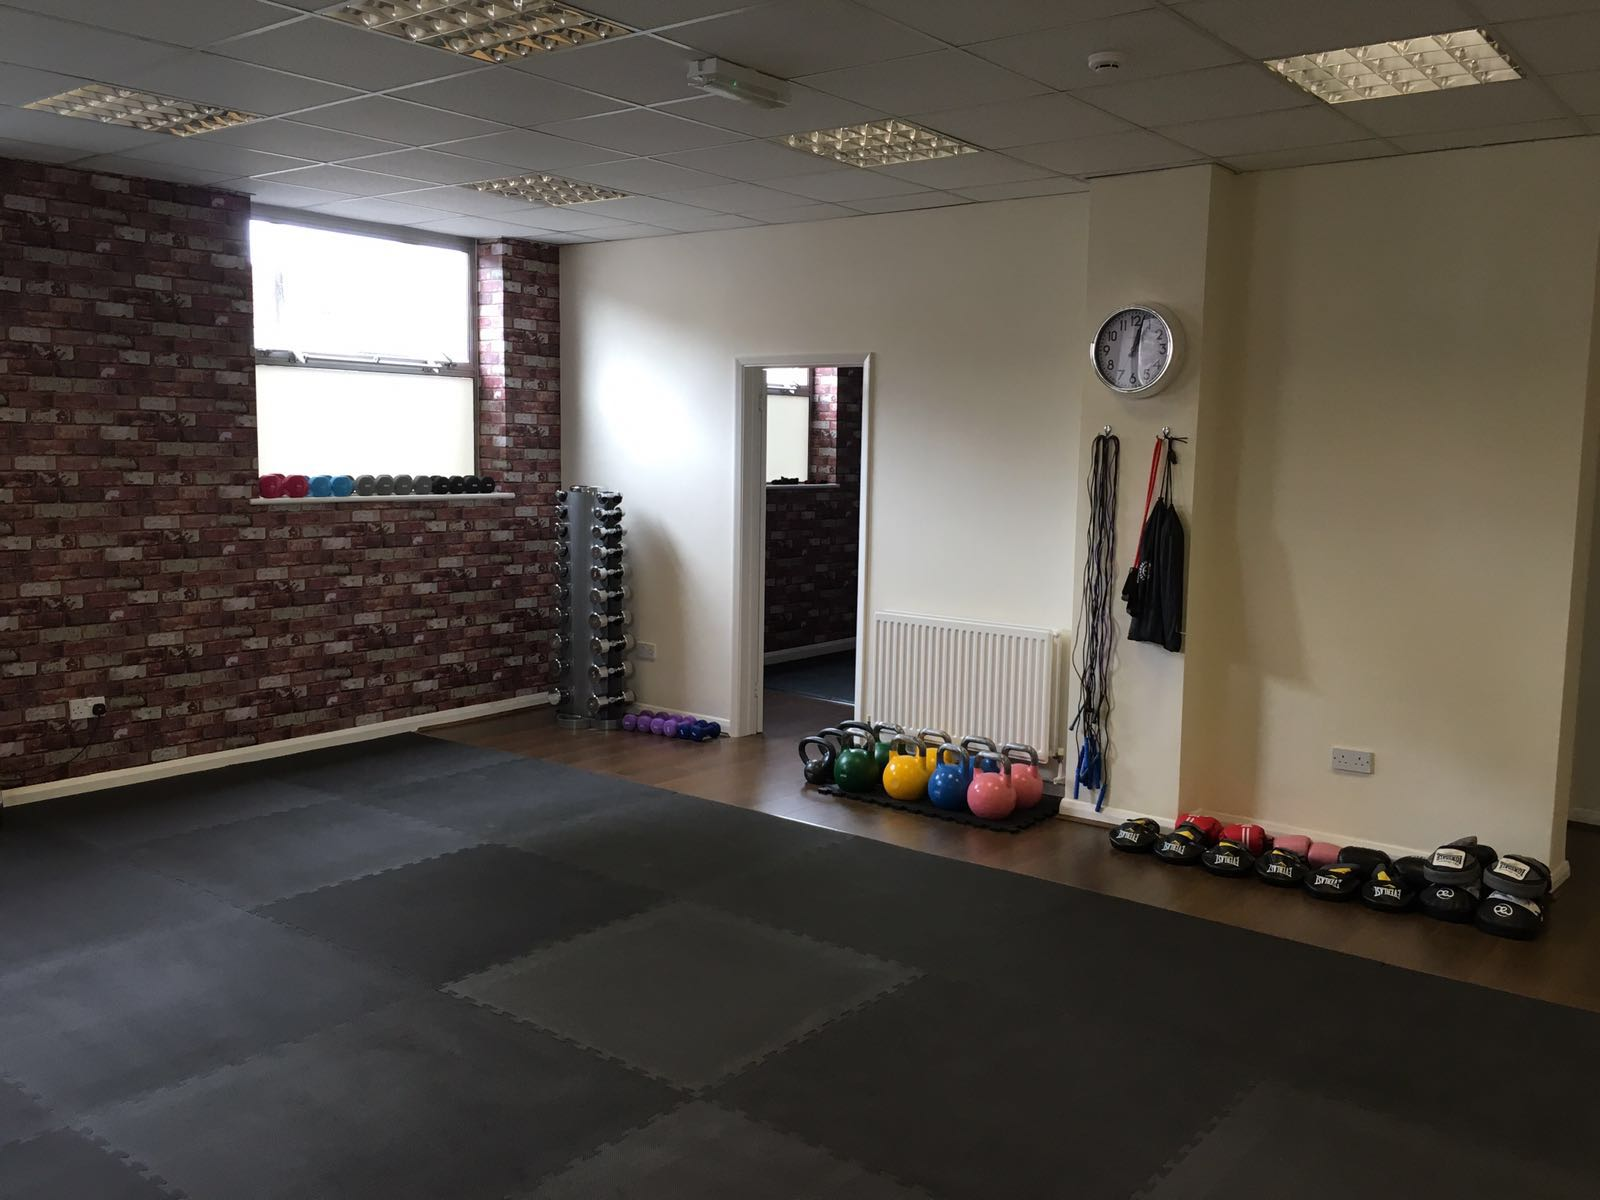 Main training room